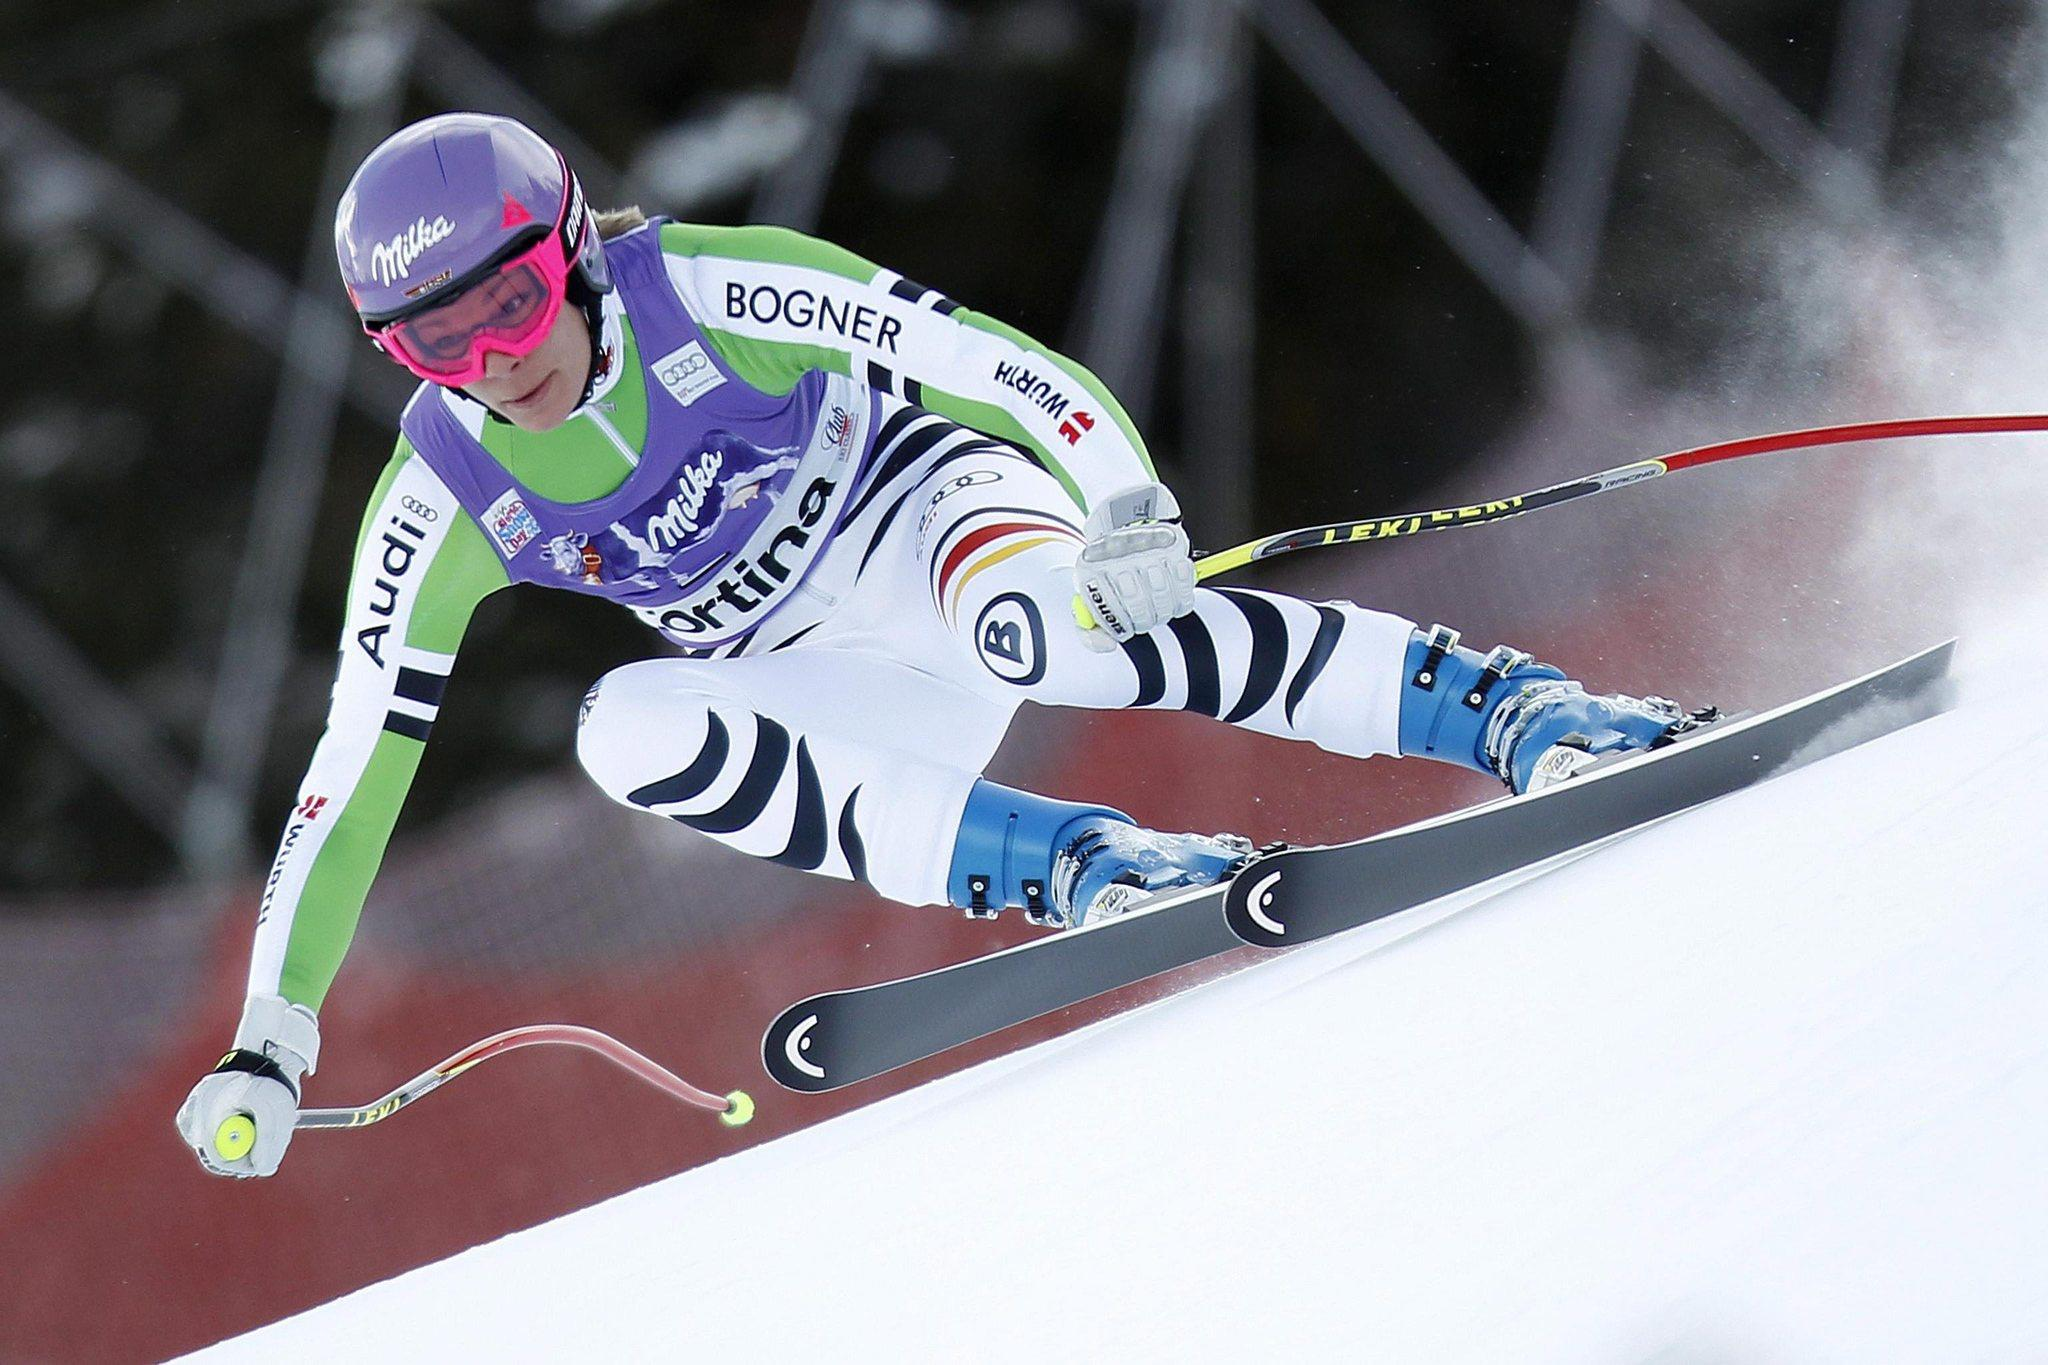 Germany's Maria Hoefl-Riesch speeds down the course during the women's FIS Alpine Skiing World Cup SuperG race in Cortina d'Ampezzo, Italy. (Andrea Solero/EPA Photo)